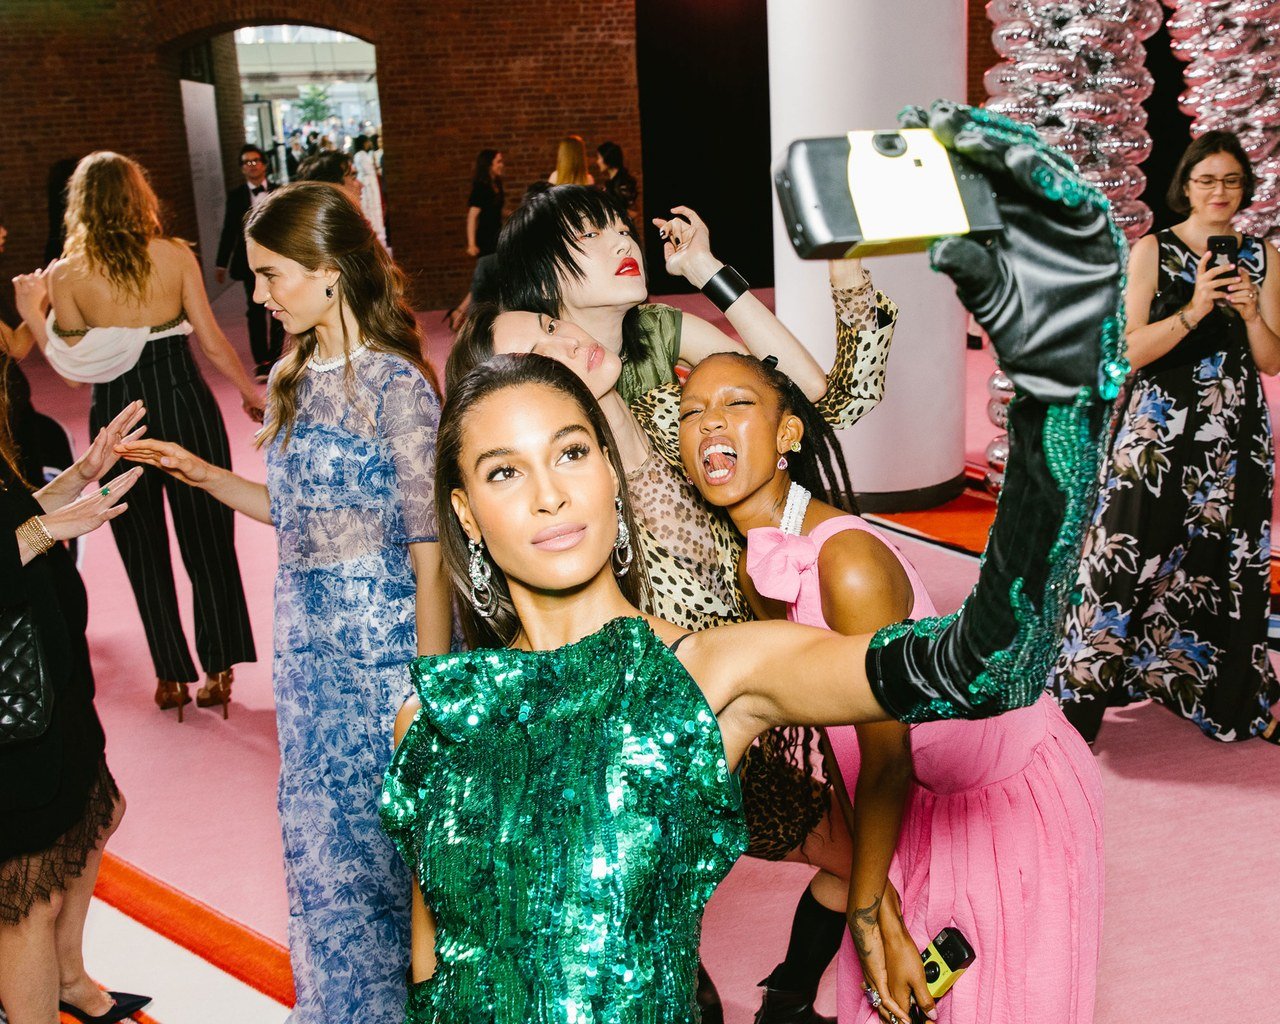 The Disposable Camera Is the Next It Girl Accessory Vogue 1280x1024